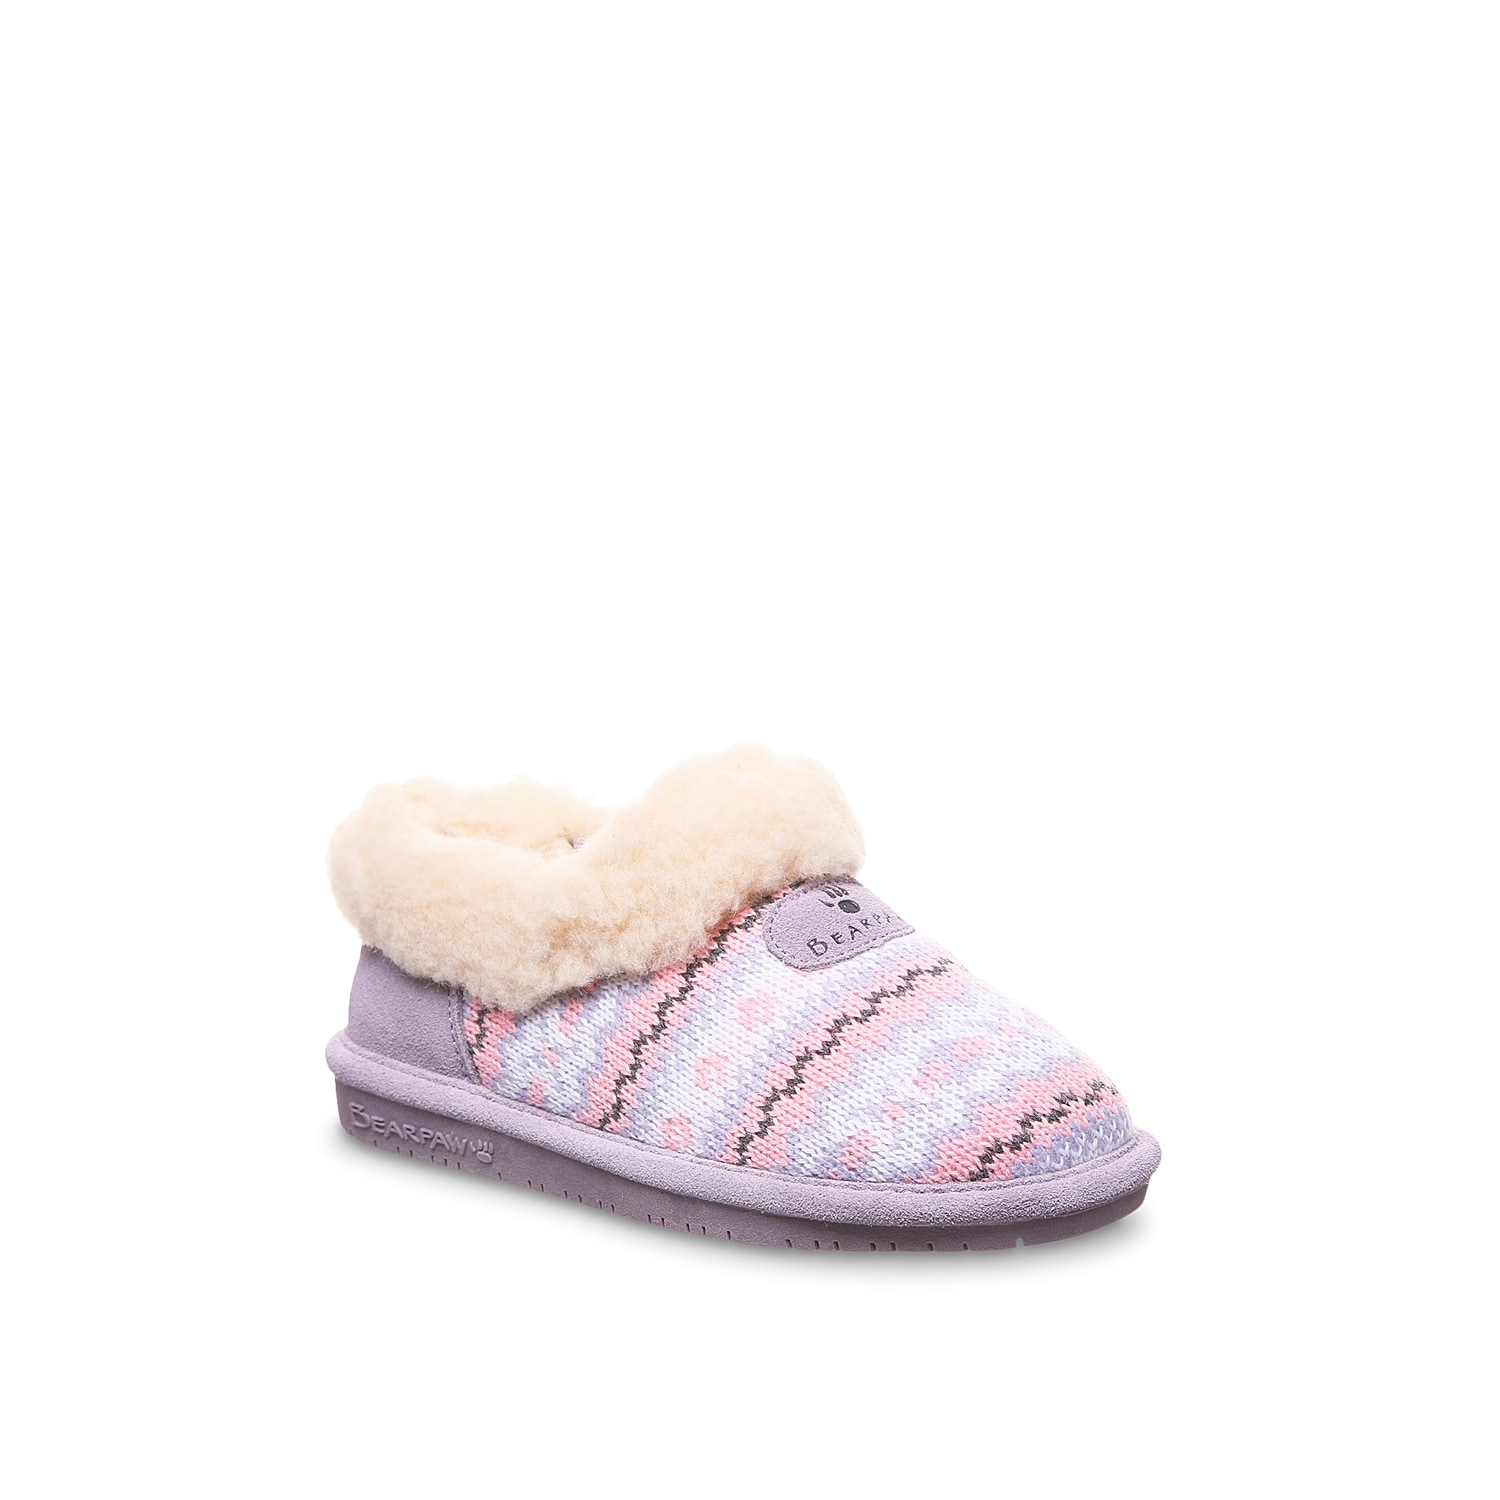 She\\\'ll kick back and relax in the Alice slippers from Bearpaw. These cozy knitted slip-ons feature a warm wool-blend lining to keep toes toasty and NeverWet water-resistance to keep them dry. Not sure which size to order? Clickhereto check out our Kids' Measuring Guide! For more helpful tips and sizing FAQs, clickhere.